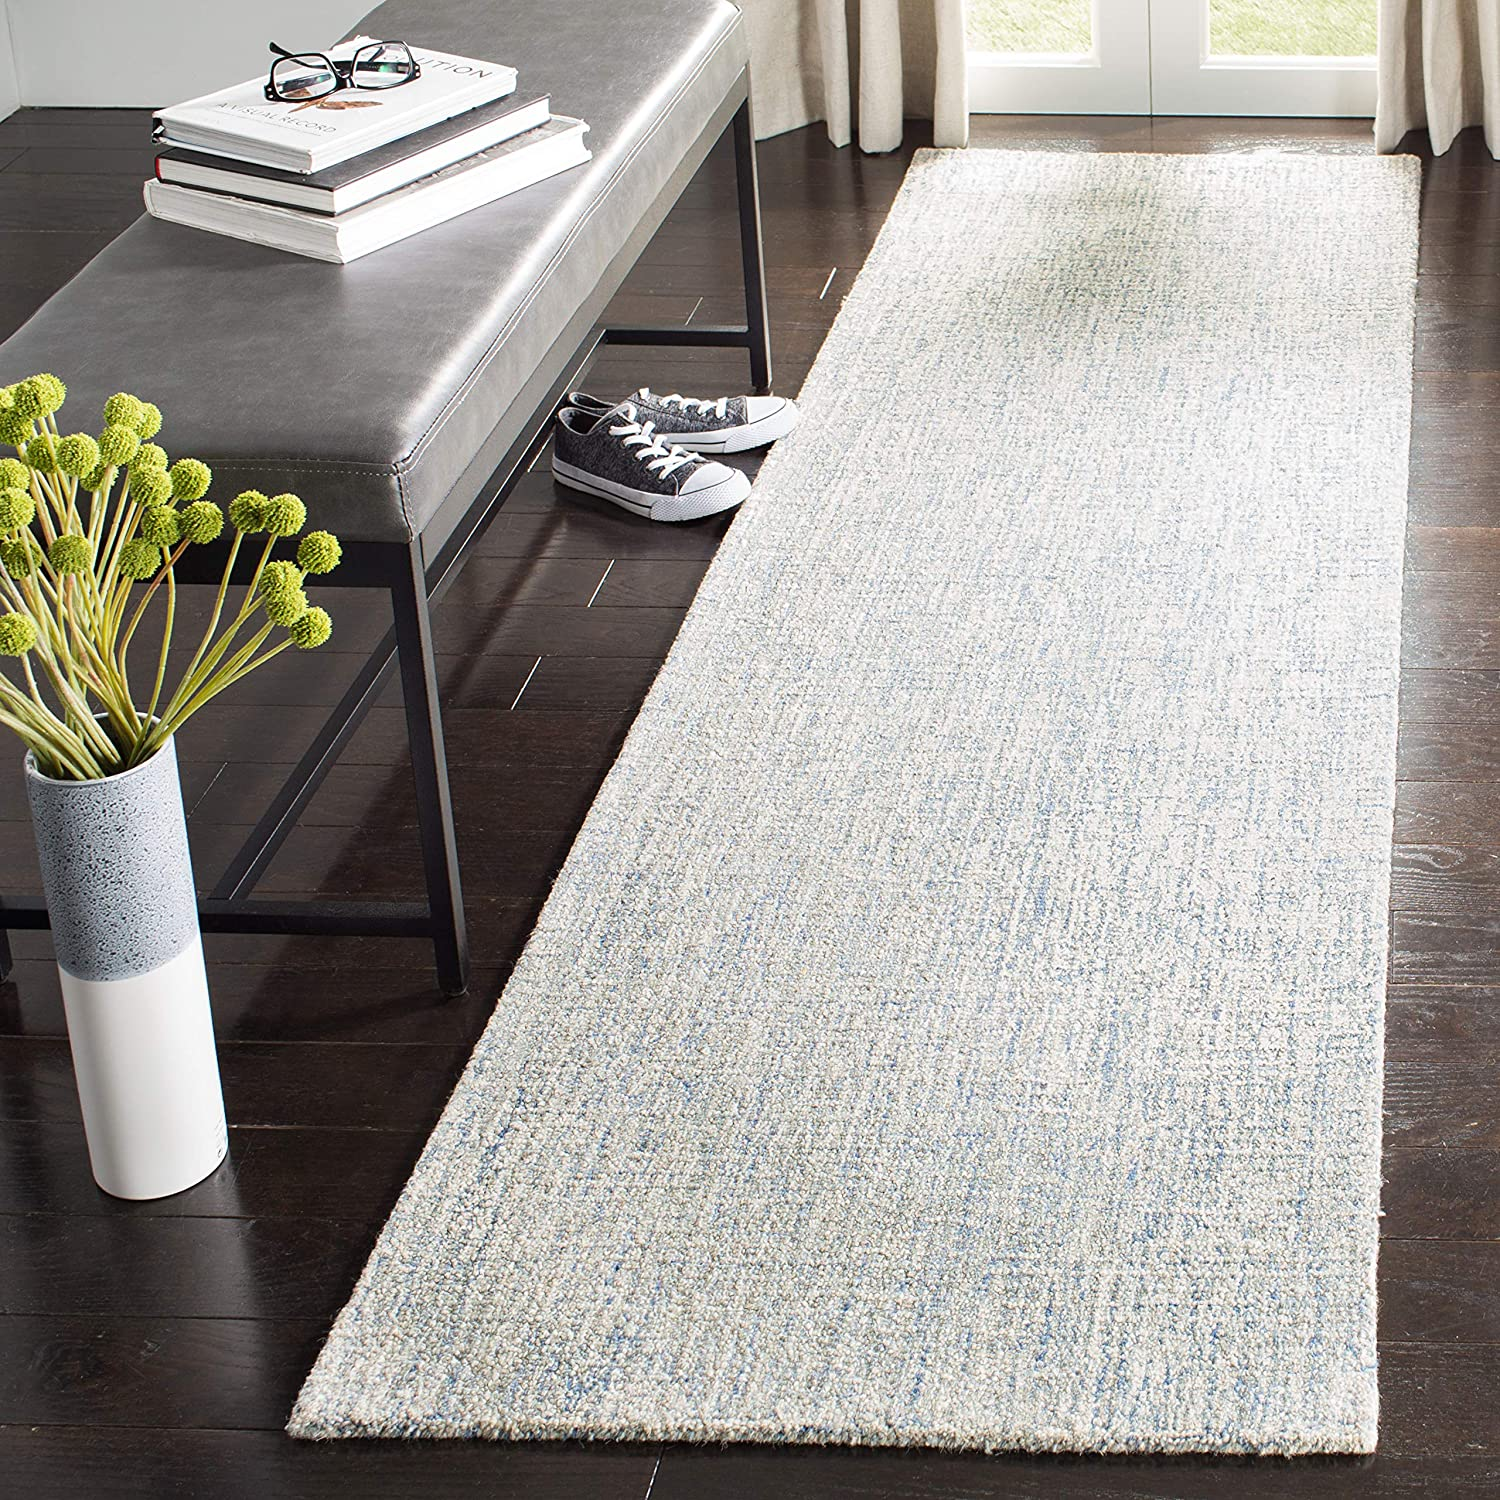 Safavieh Abstract Collection Abt471m Handmade Premium Wool Runner 2 3 X 8 Ivory Blue Furniture Decor